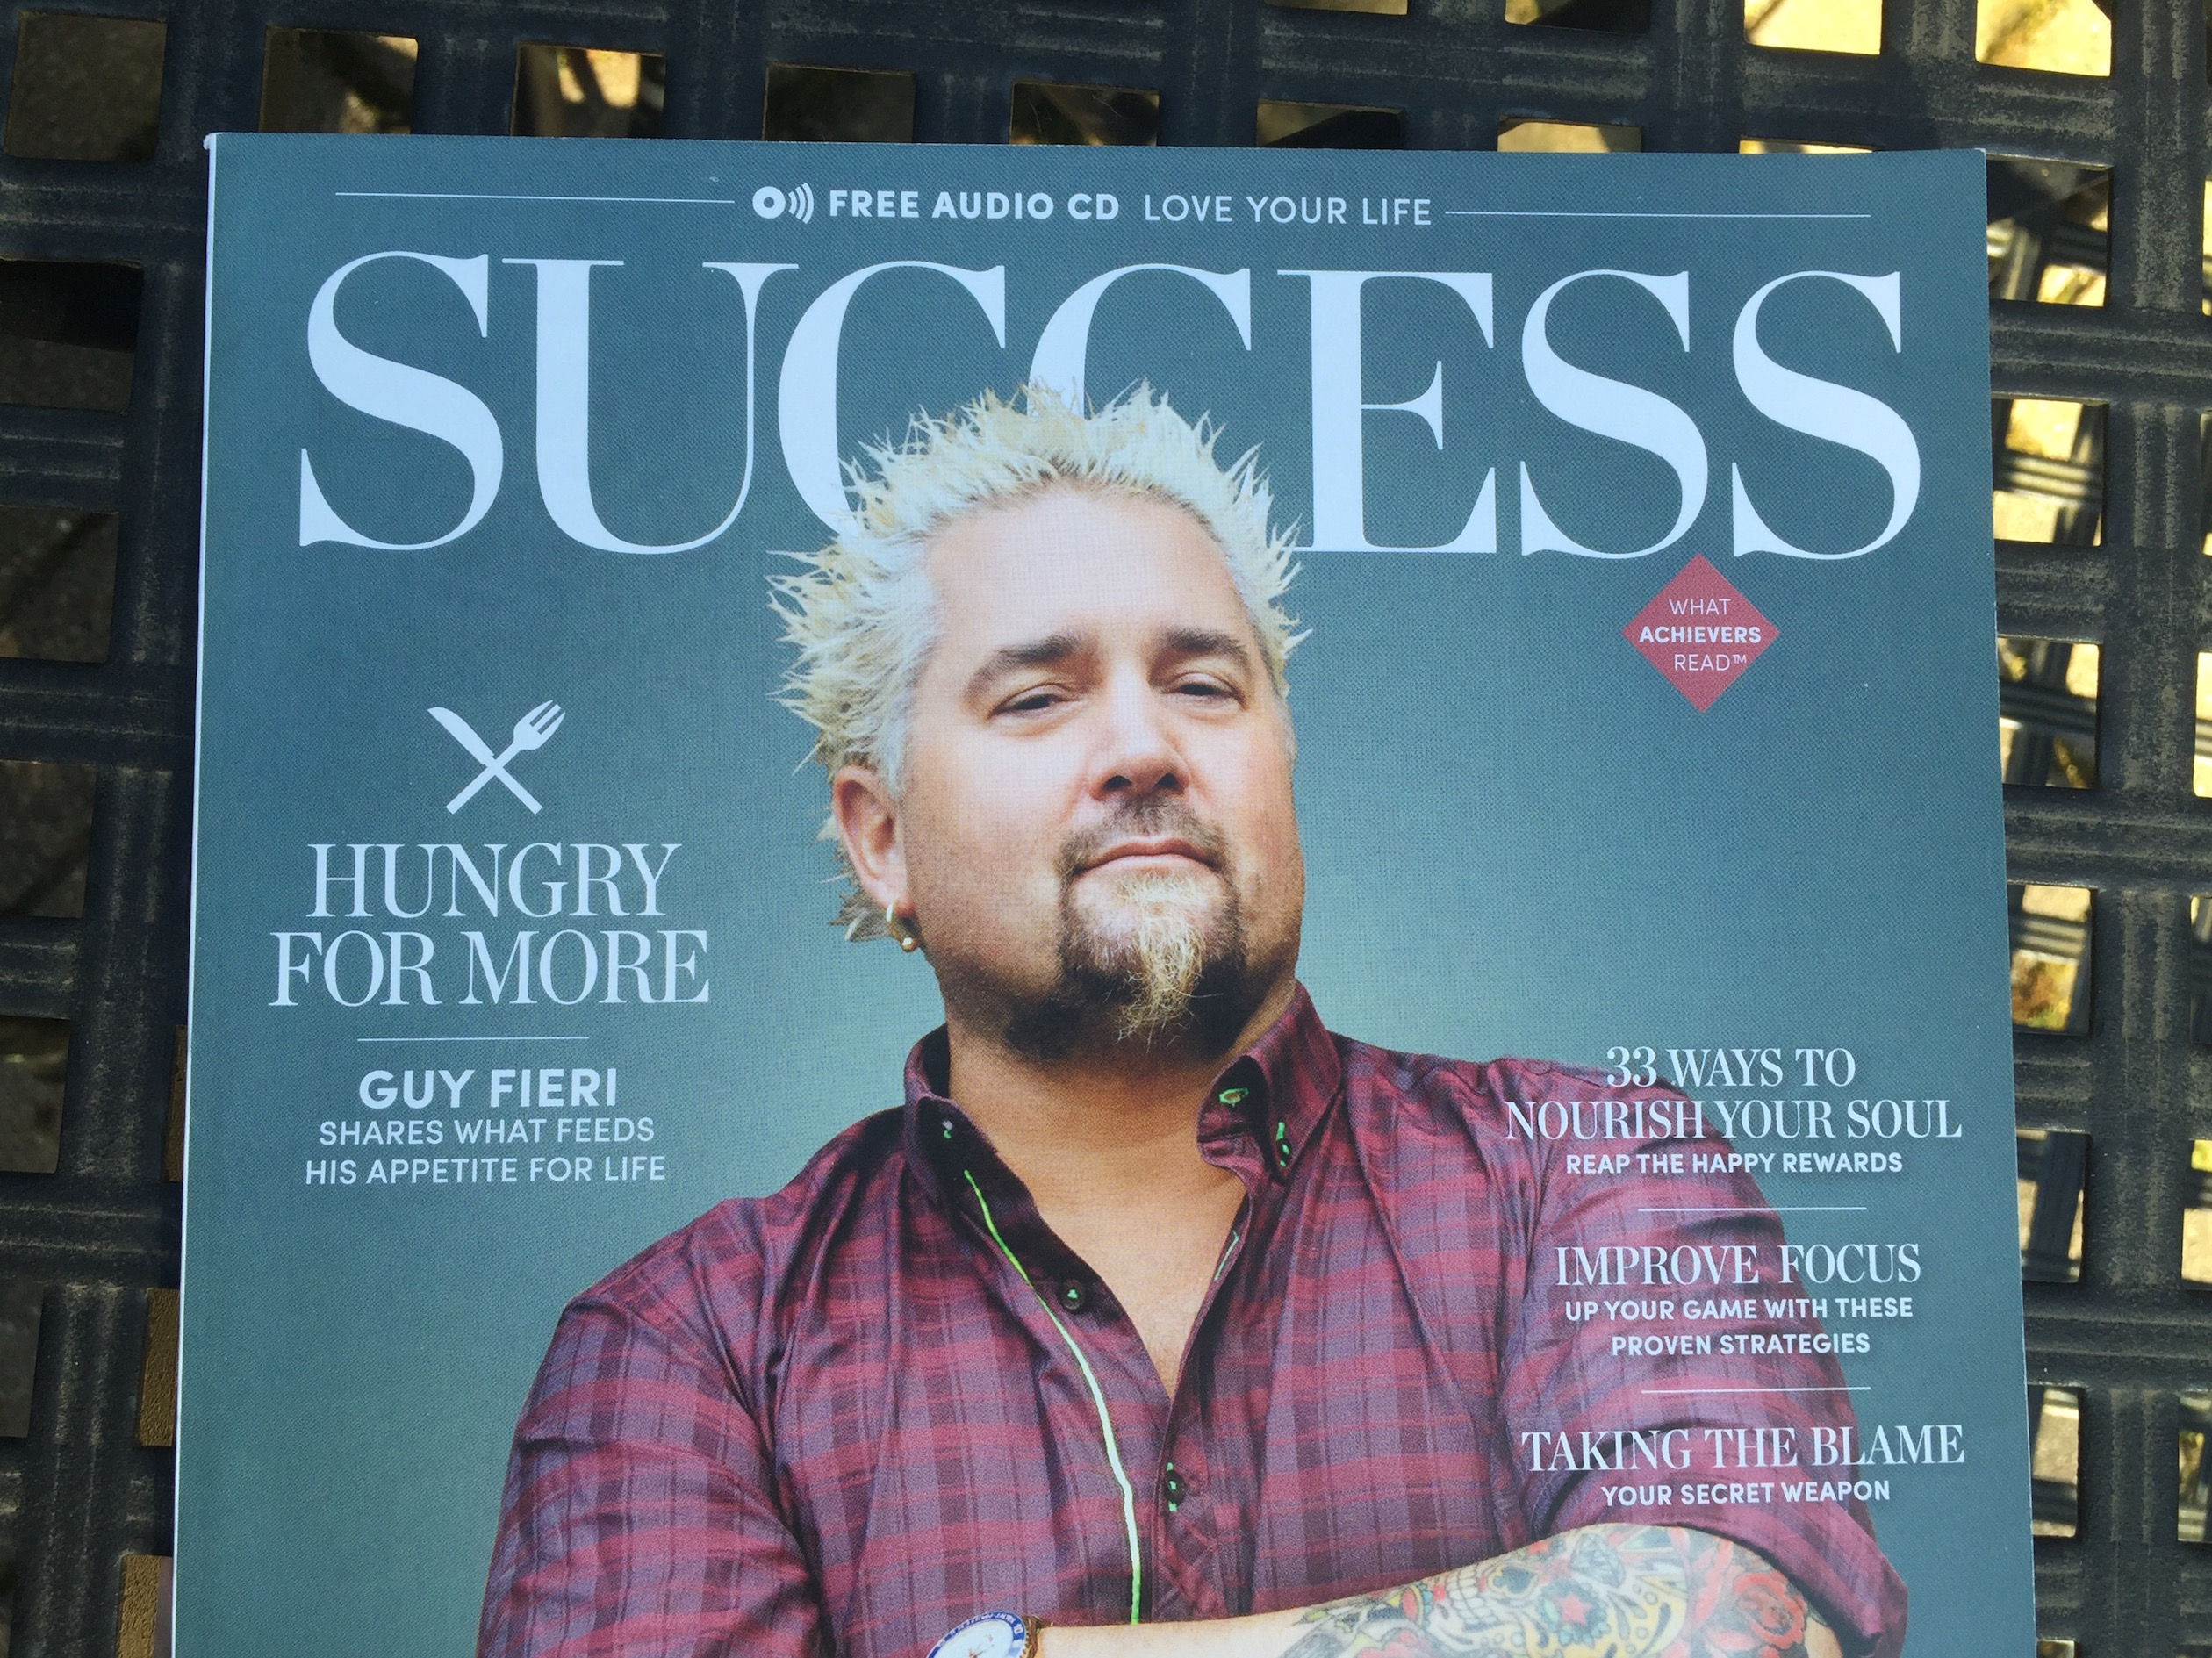 Guy fieri quotes every college student needs to read